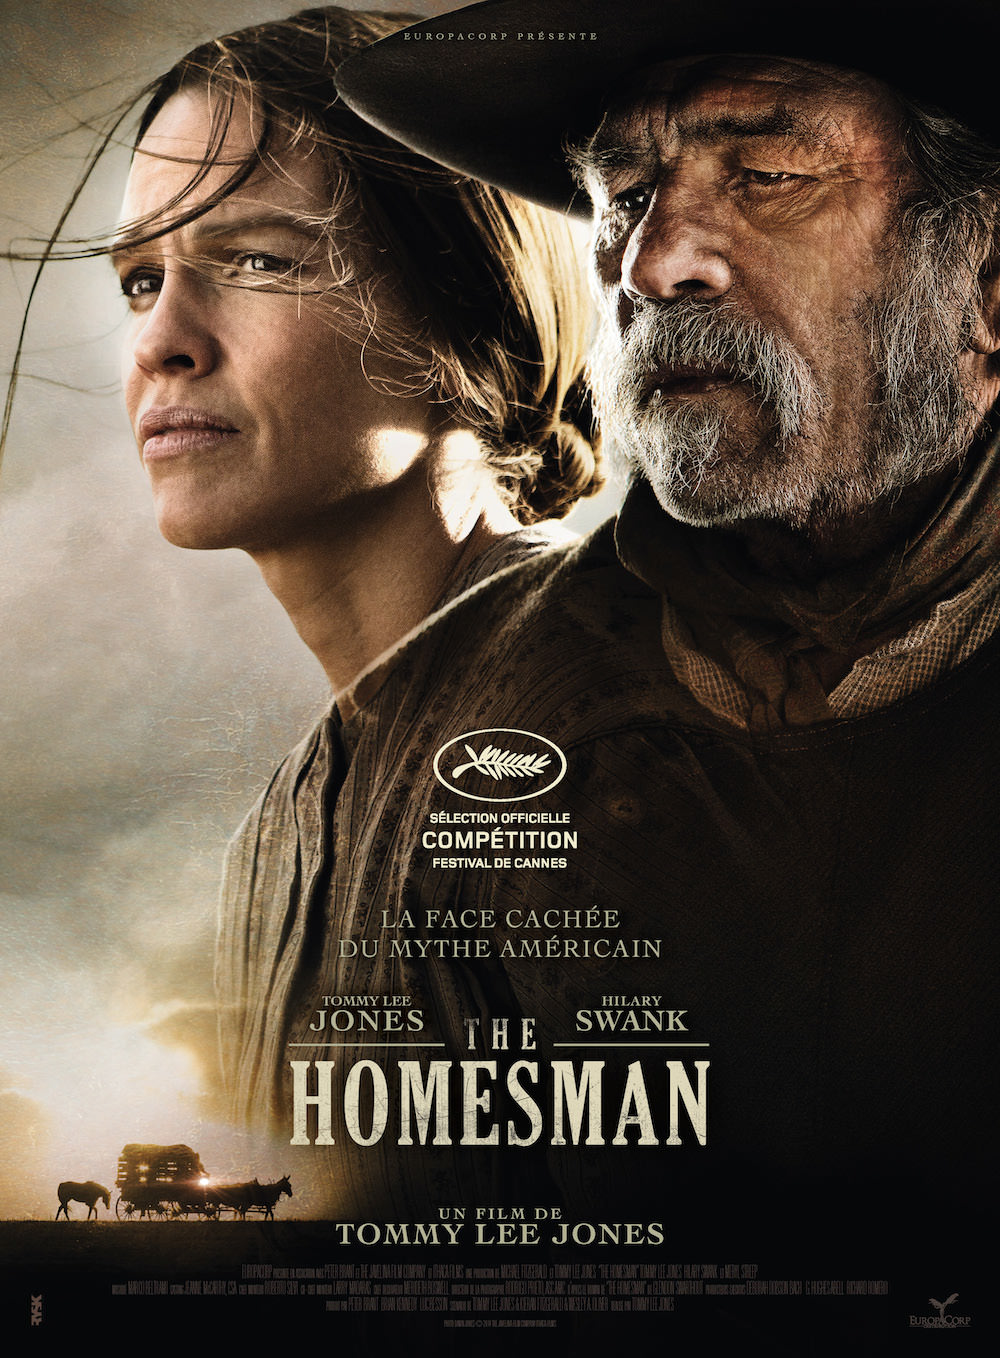 The homesman jones